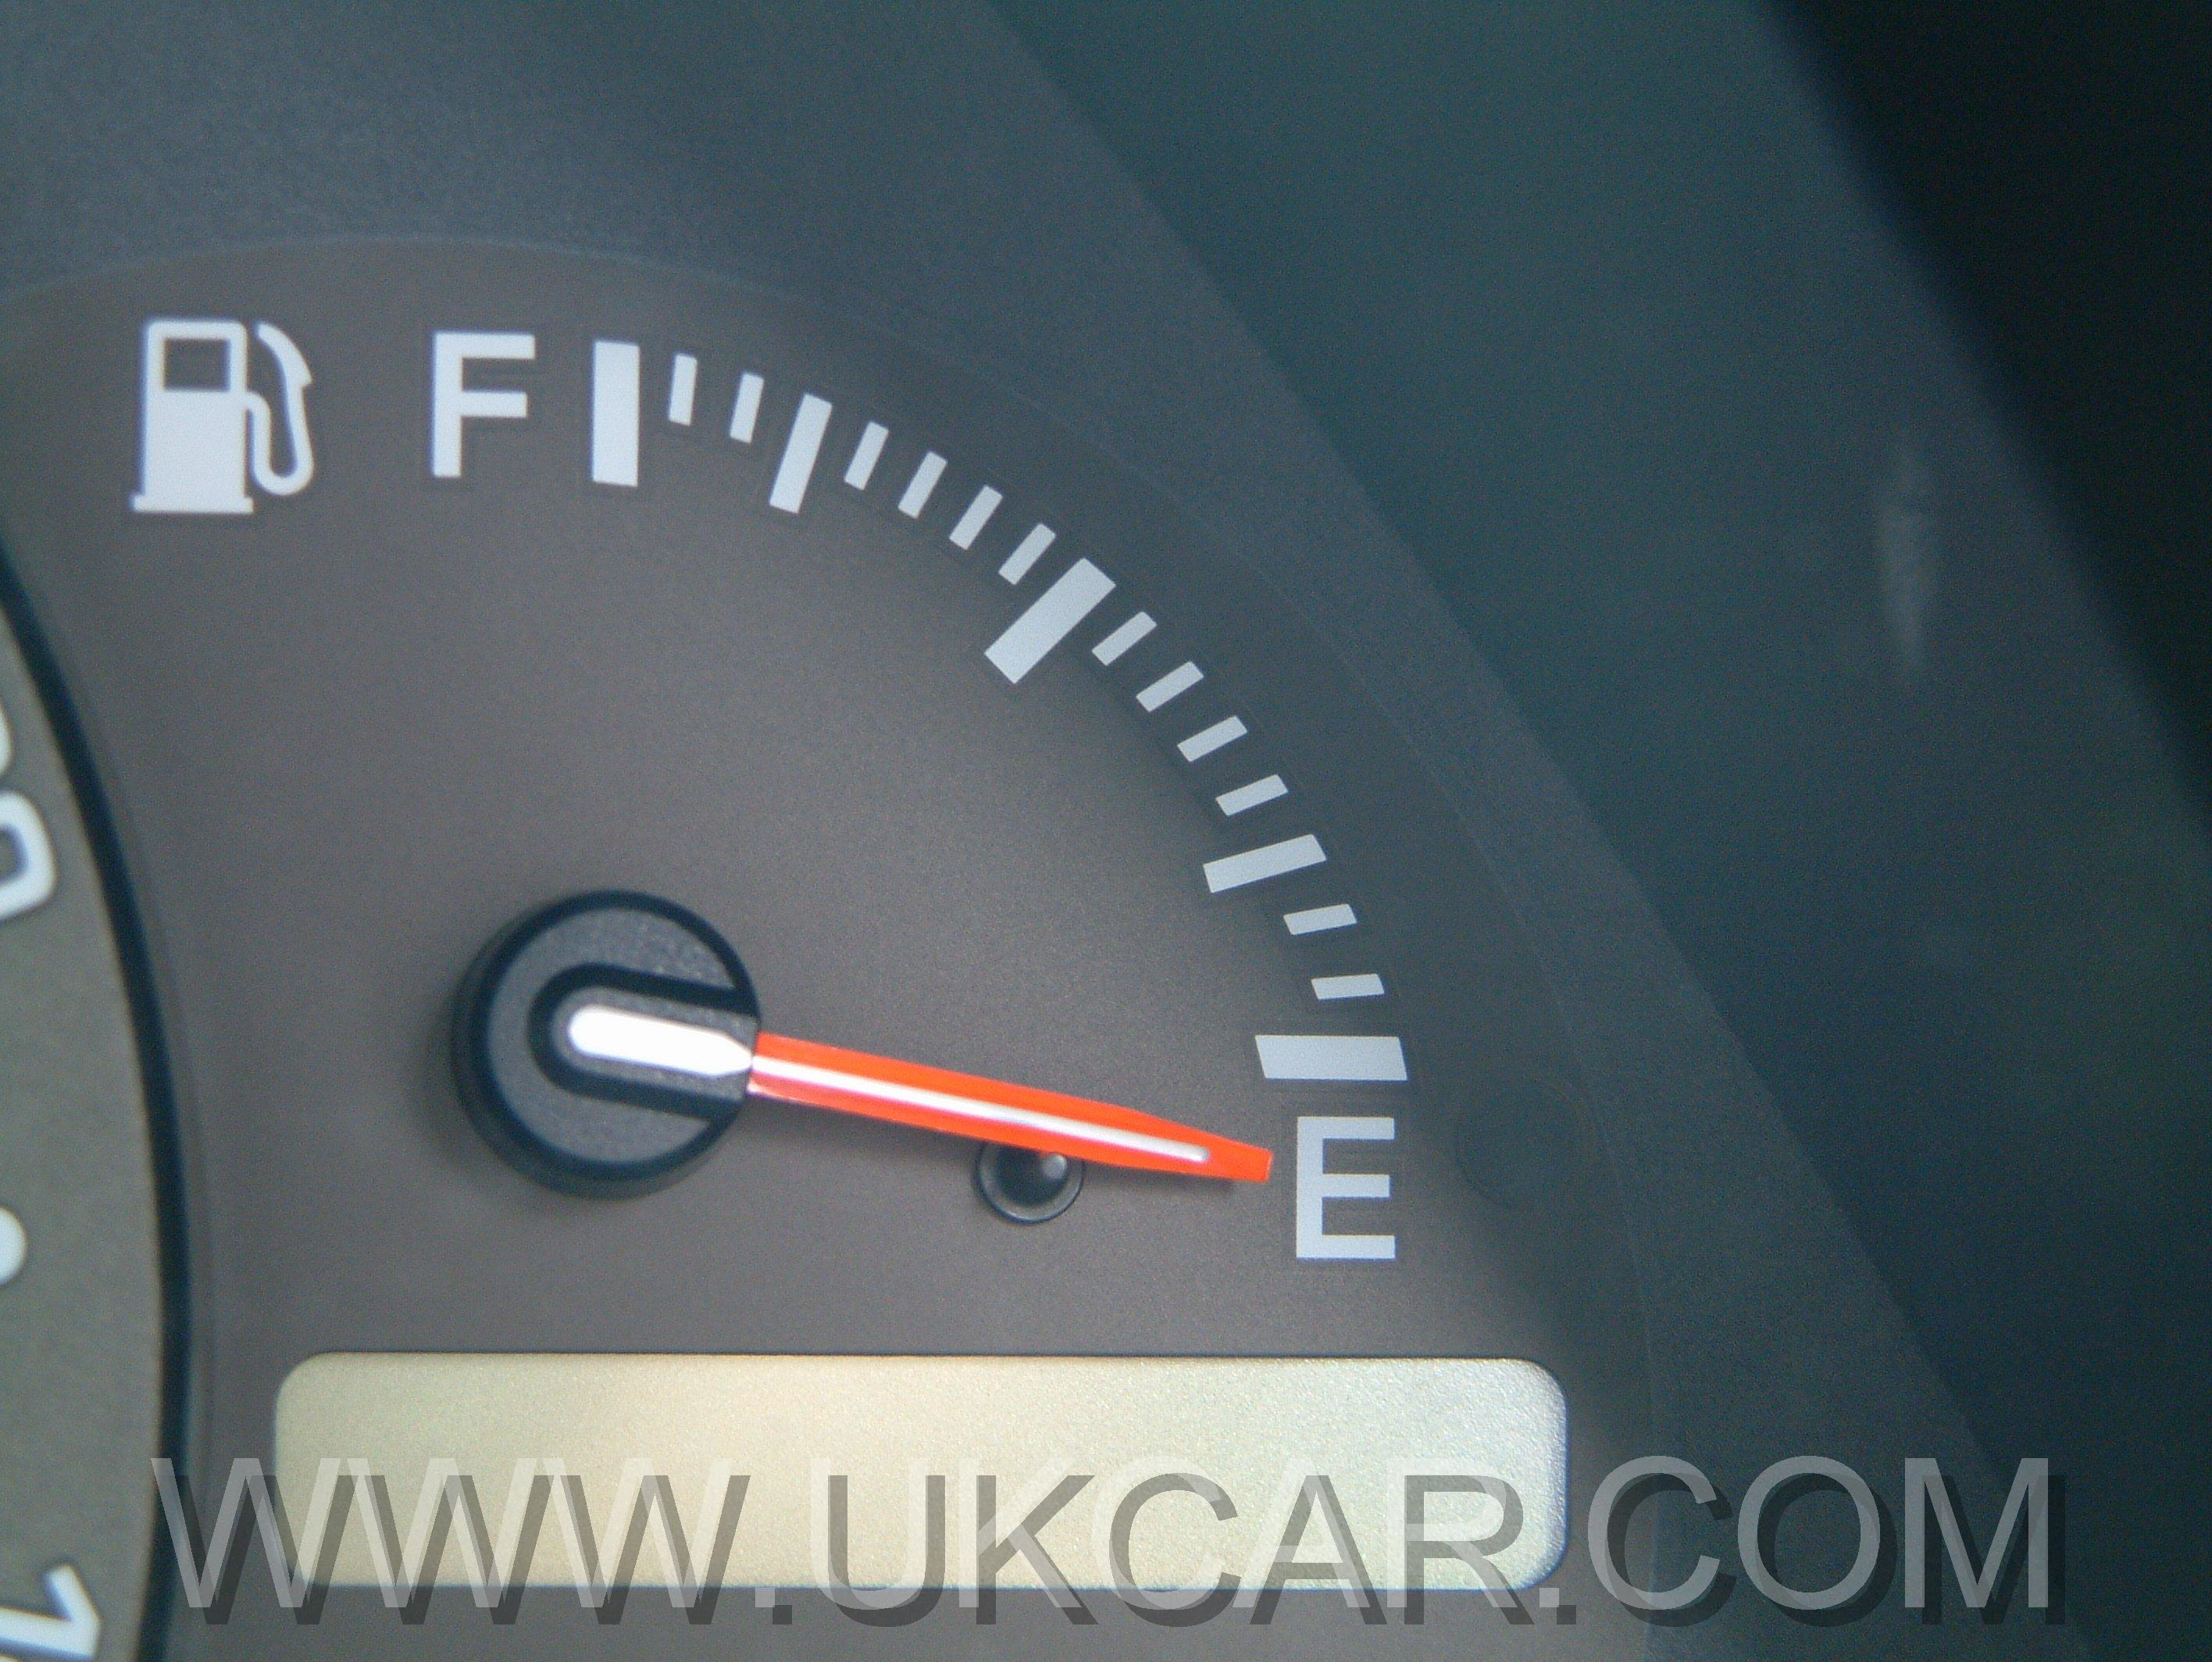 http://www.ukcar.com/road_tests/Lexus/lexus-is/LEXUS-IS-200-FUEL-GAUGE.jpg